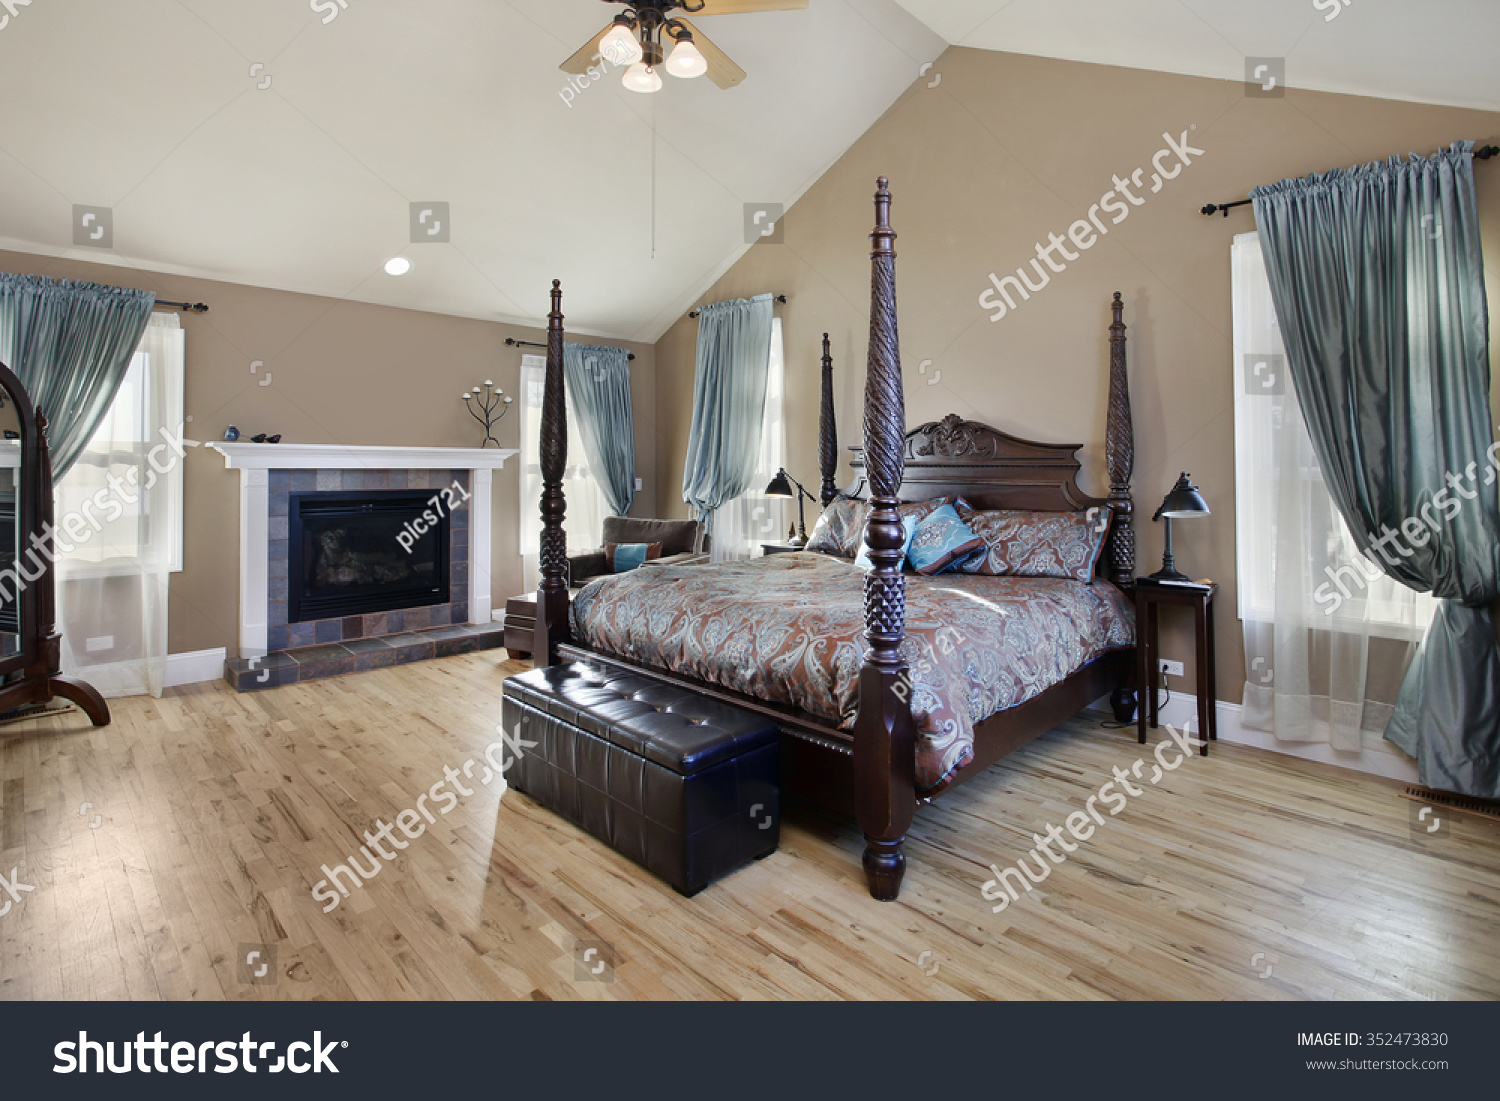 Master Bedroom Suburban Home Fireplace Stock Photo 352473830 Shutterstock